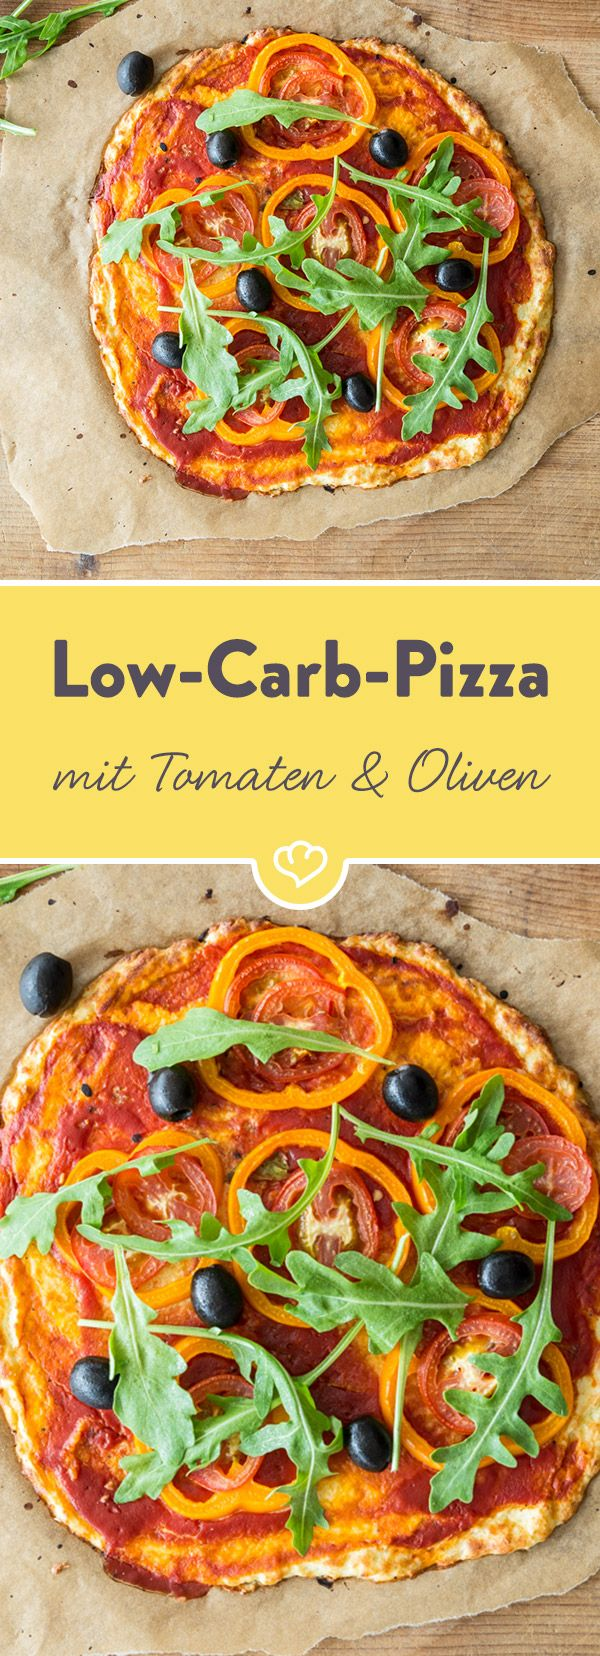 low carb pizza mit tomaten oliven und rucola rezept rezepte herzhaft s. Black Bedroom Furniture Sets. Home Design Ideas